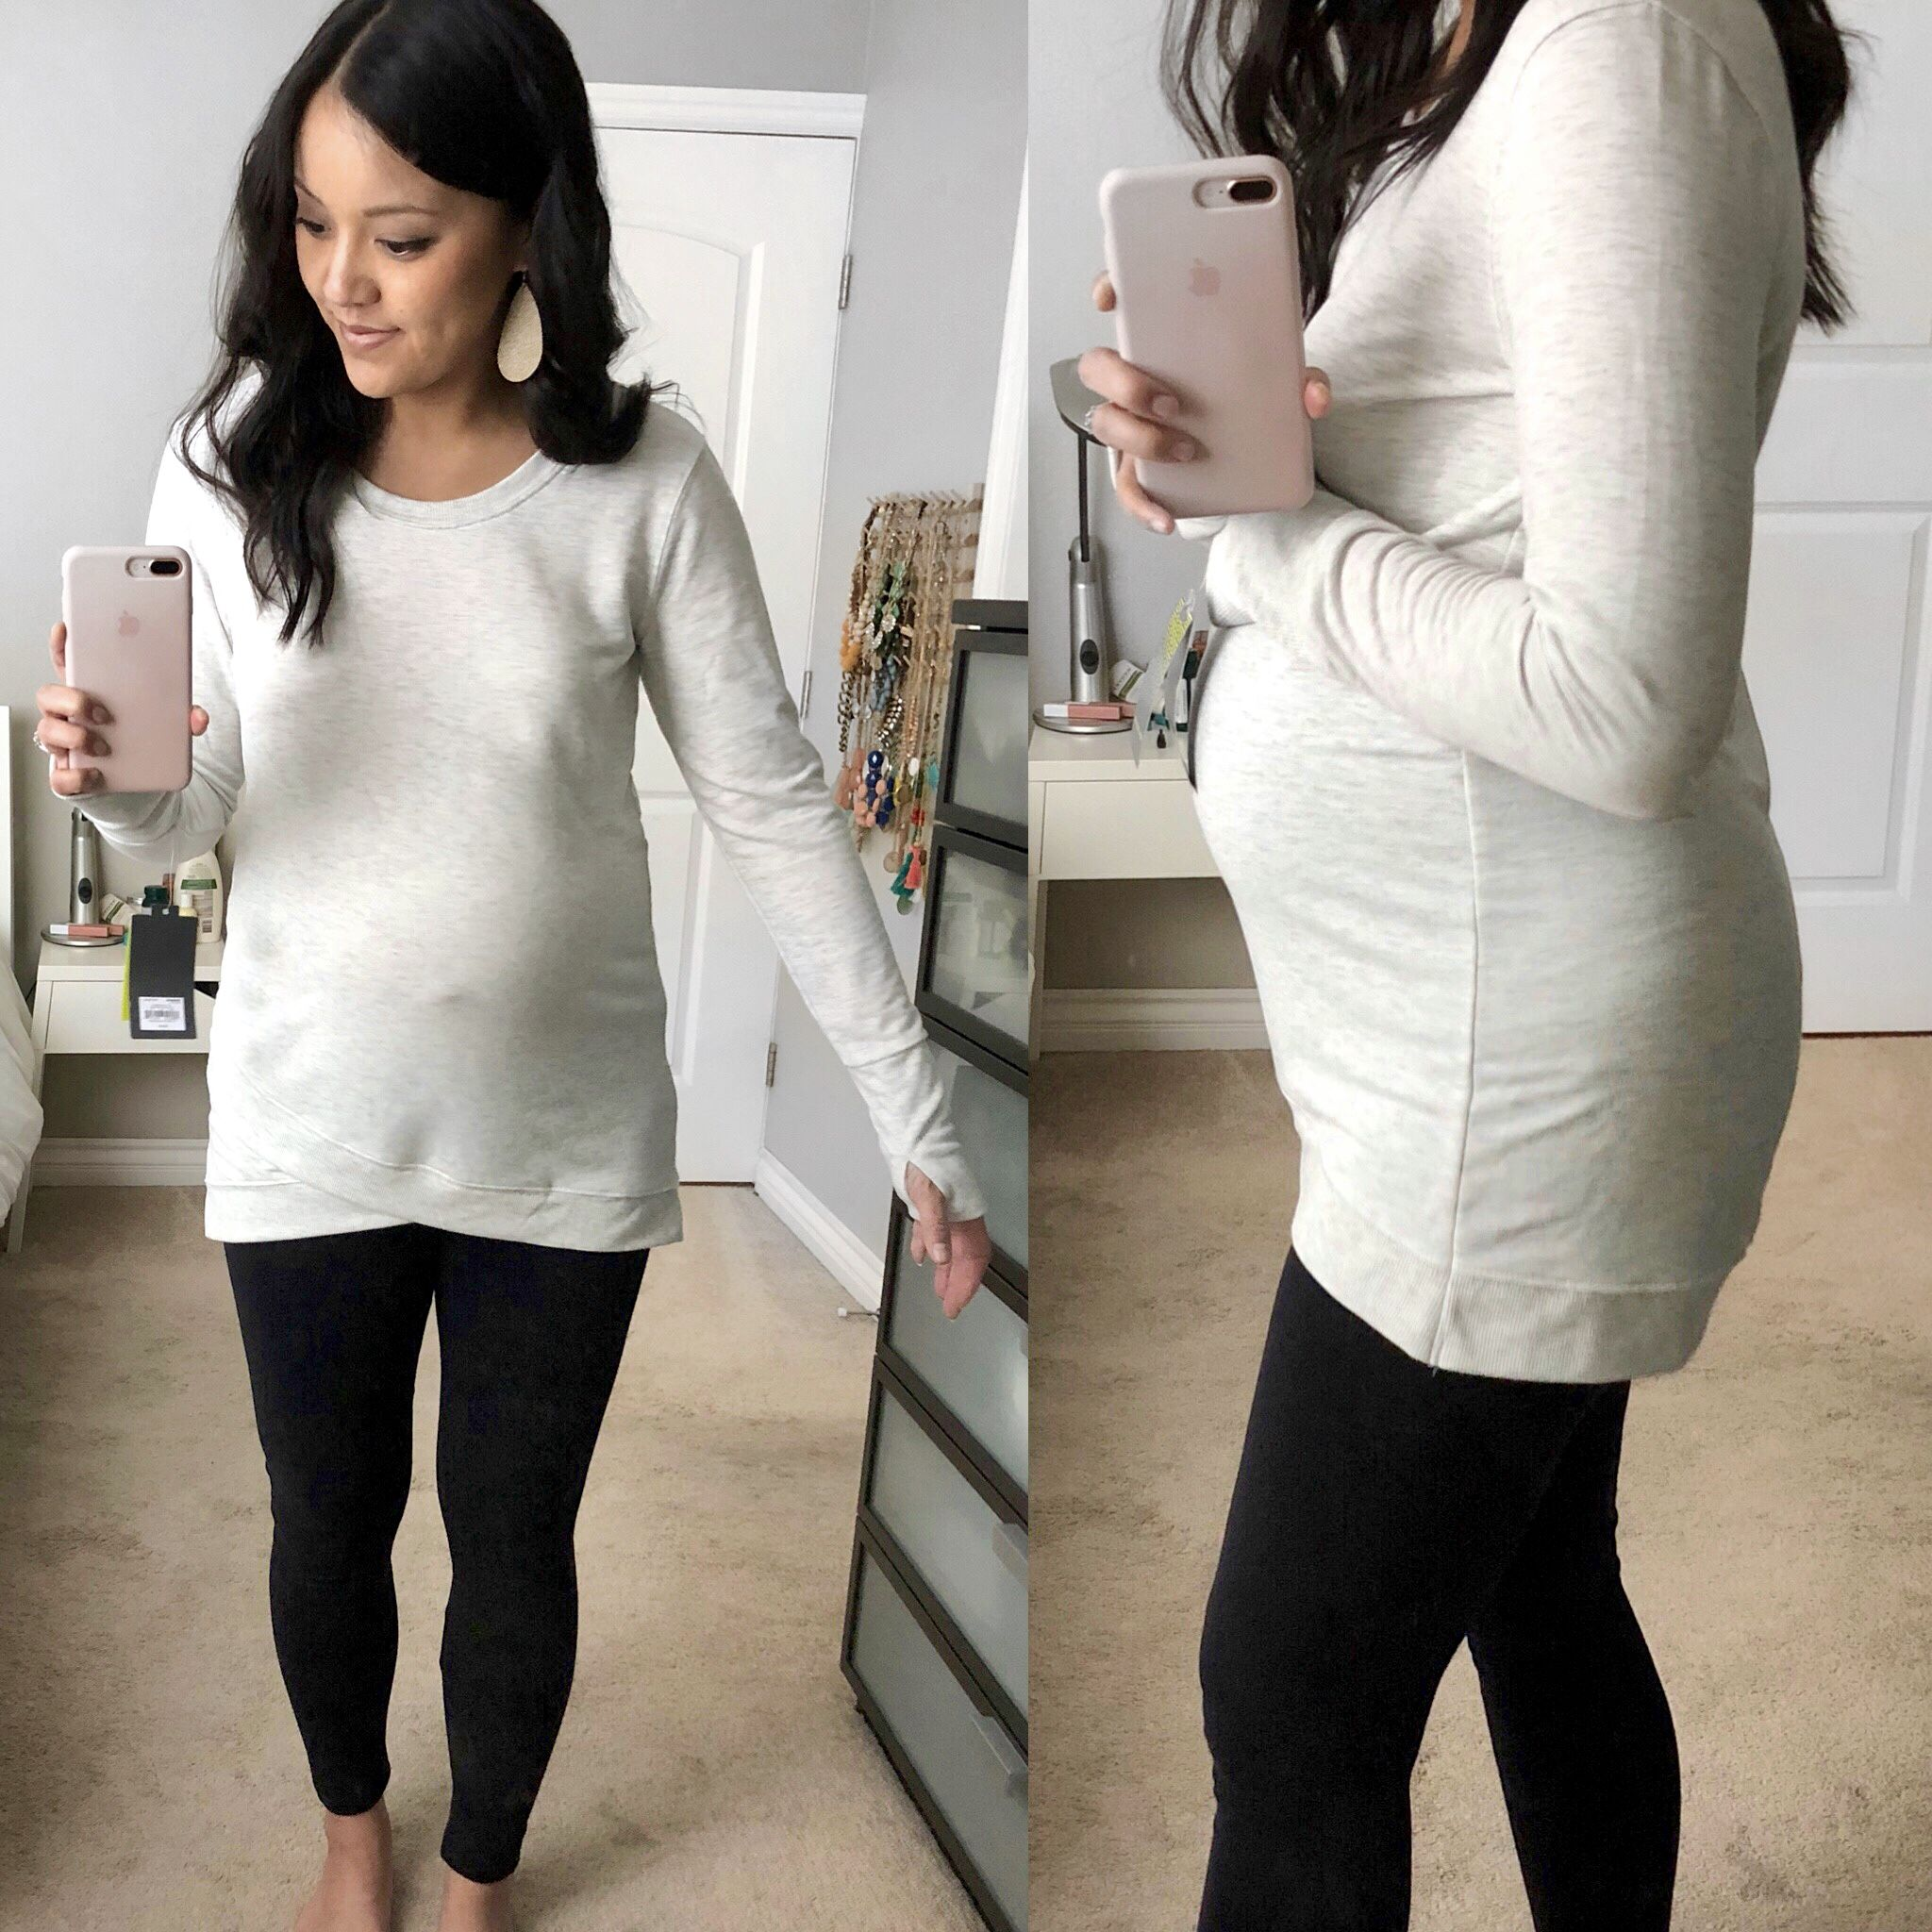 132a54f8cc0af REVIEWS: Athletic and Athleisure Gear + Business Casual Maternity ...